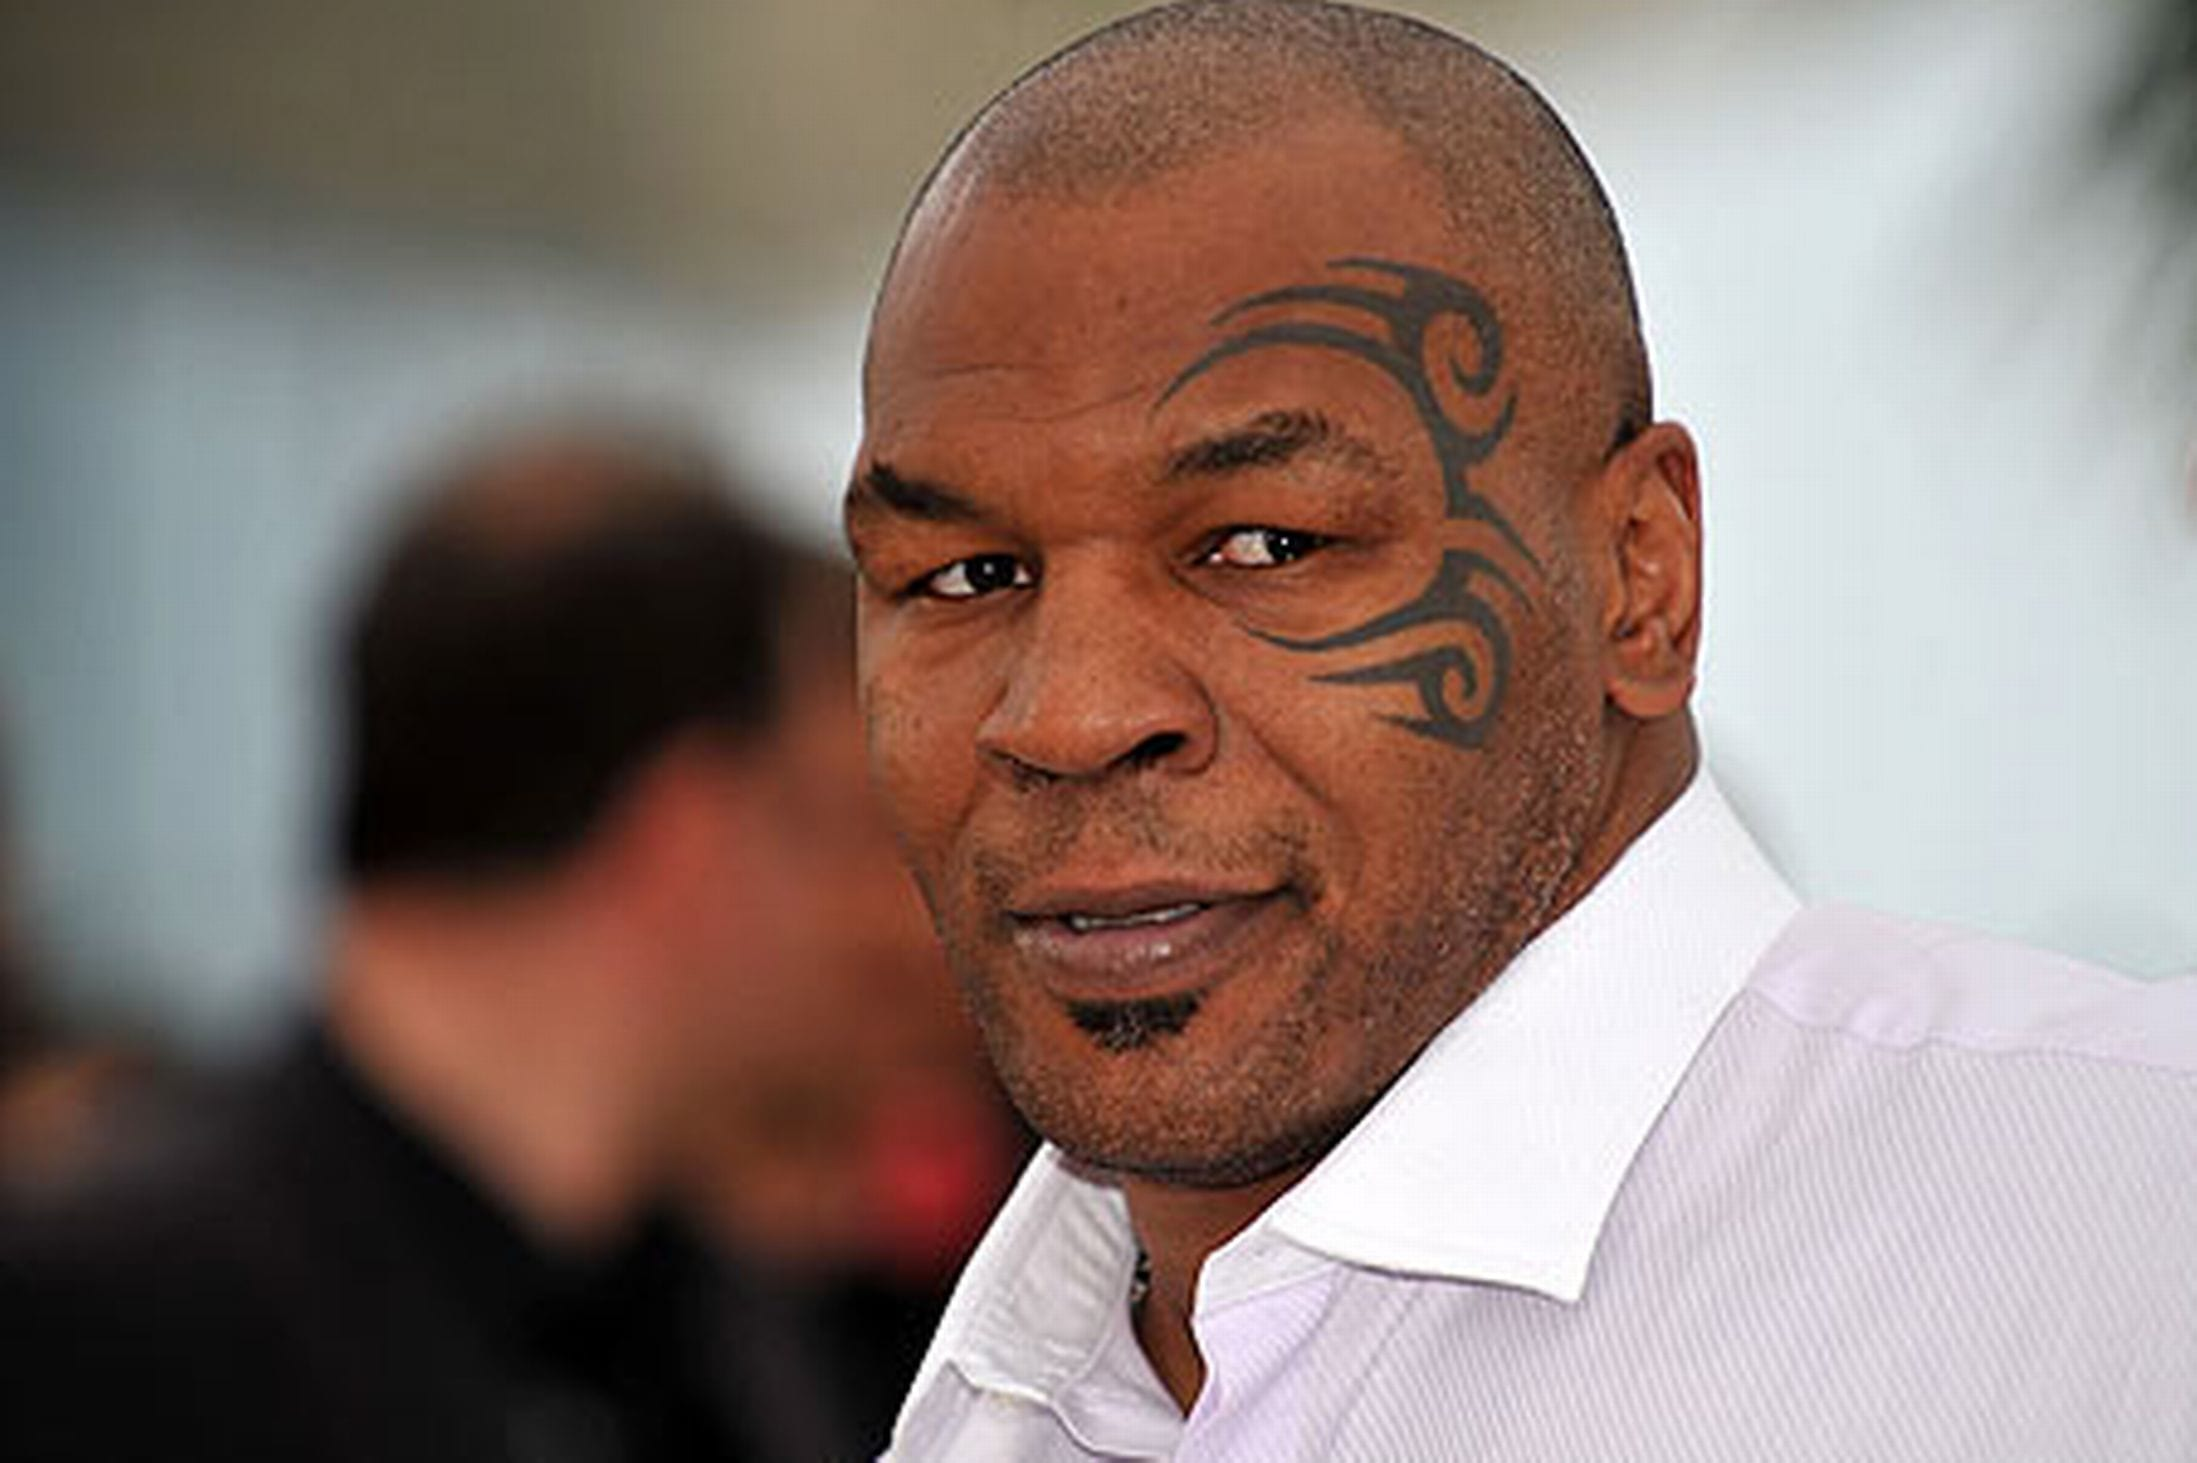 mike-tyson-pic-getty-image-1-266516999 English Muslim Converts-30 Famous People Who Converted To Islam